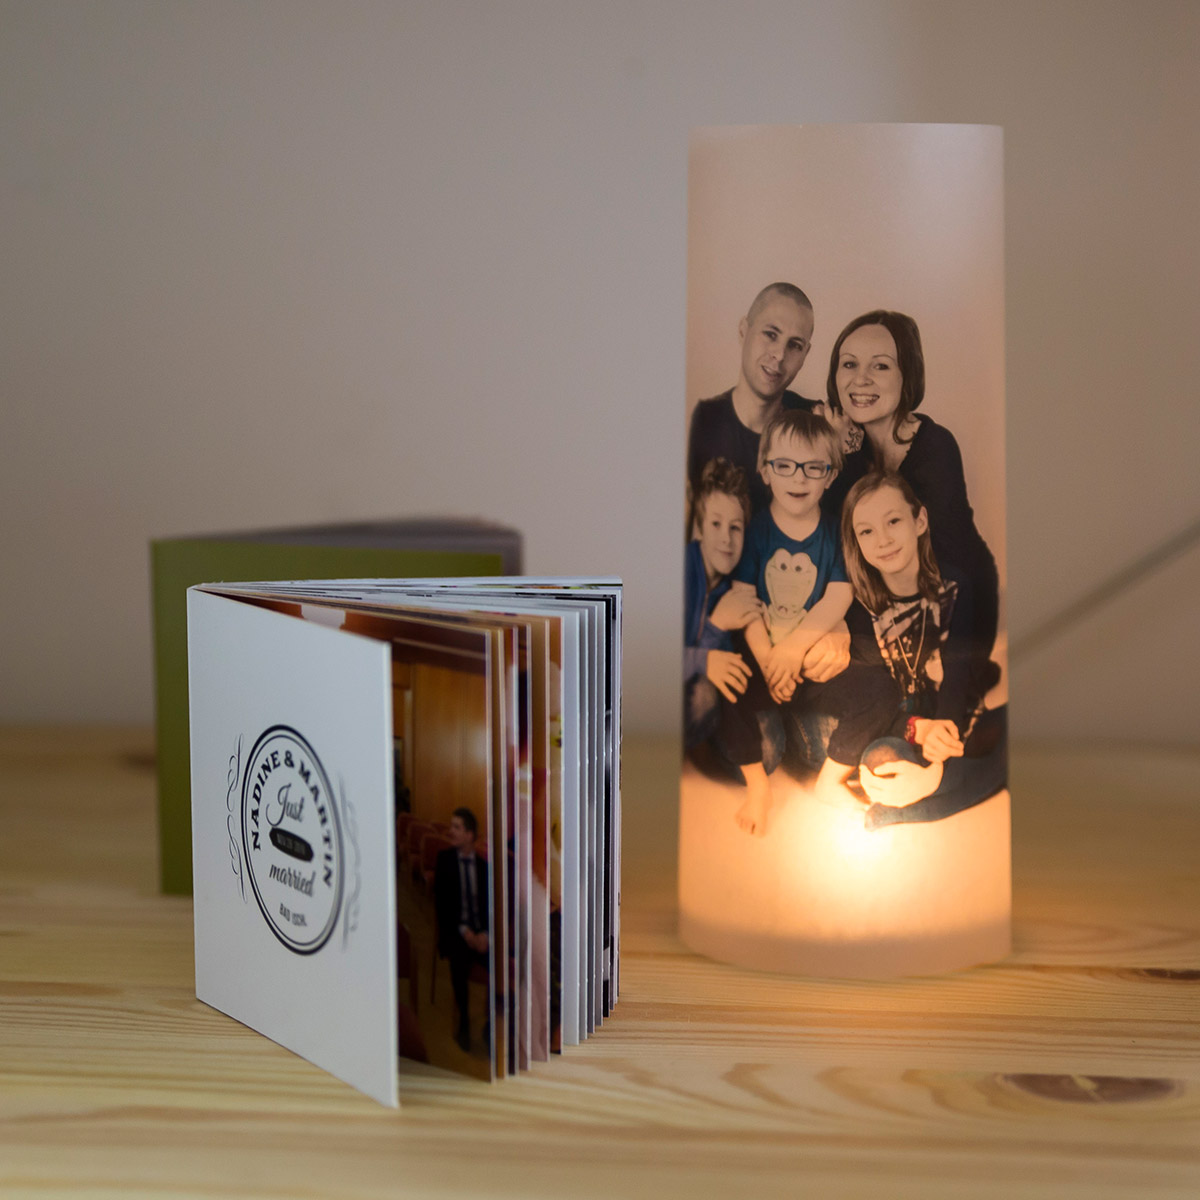 Paper Light Shades bei MORI Werbung & Fotografie in der Aschausiedlung in Bad Ischl